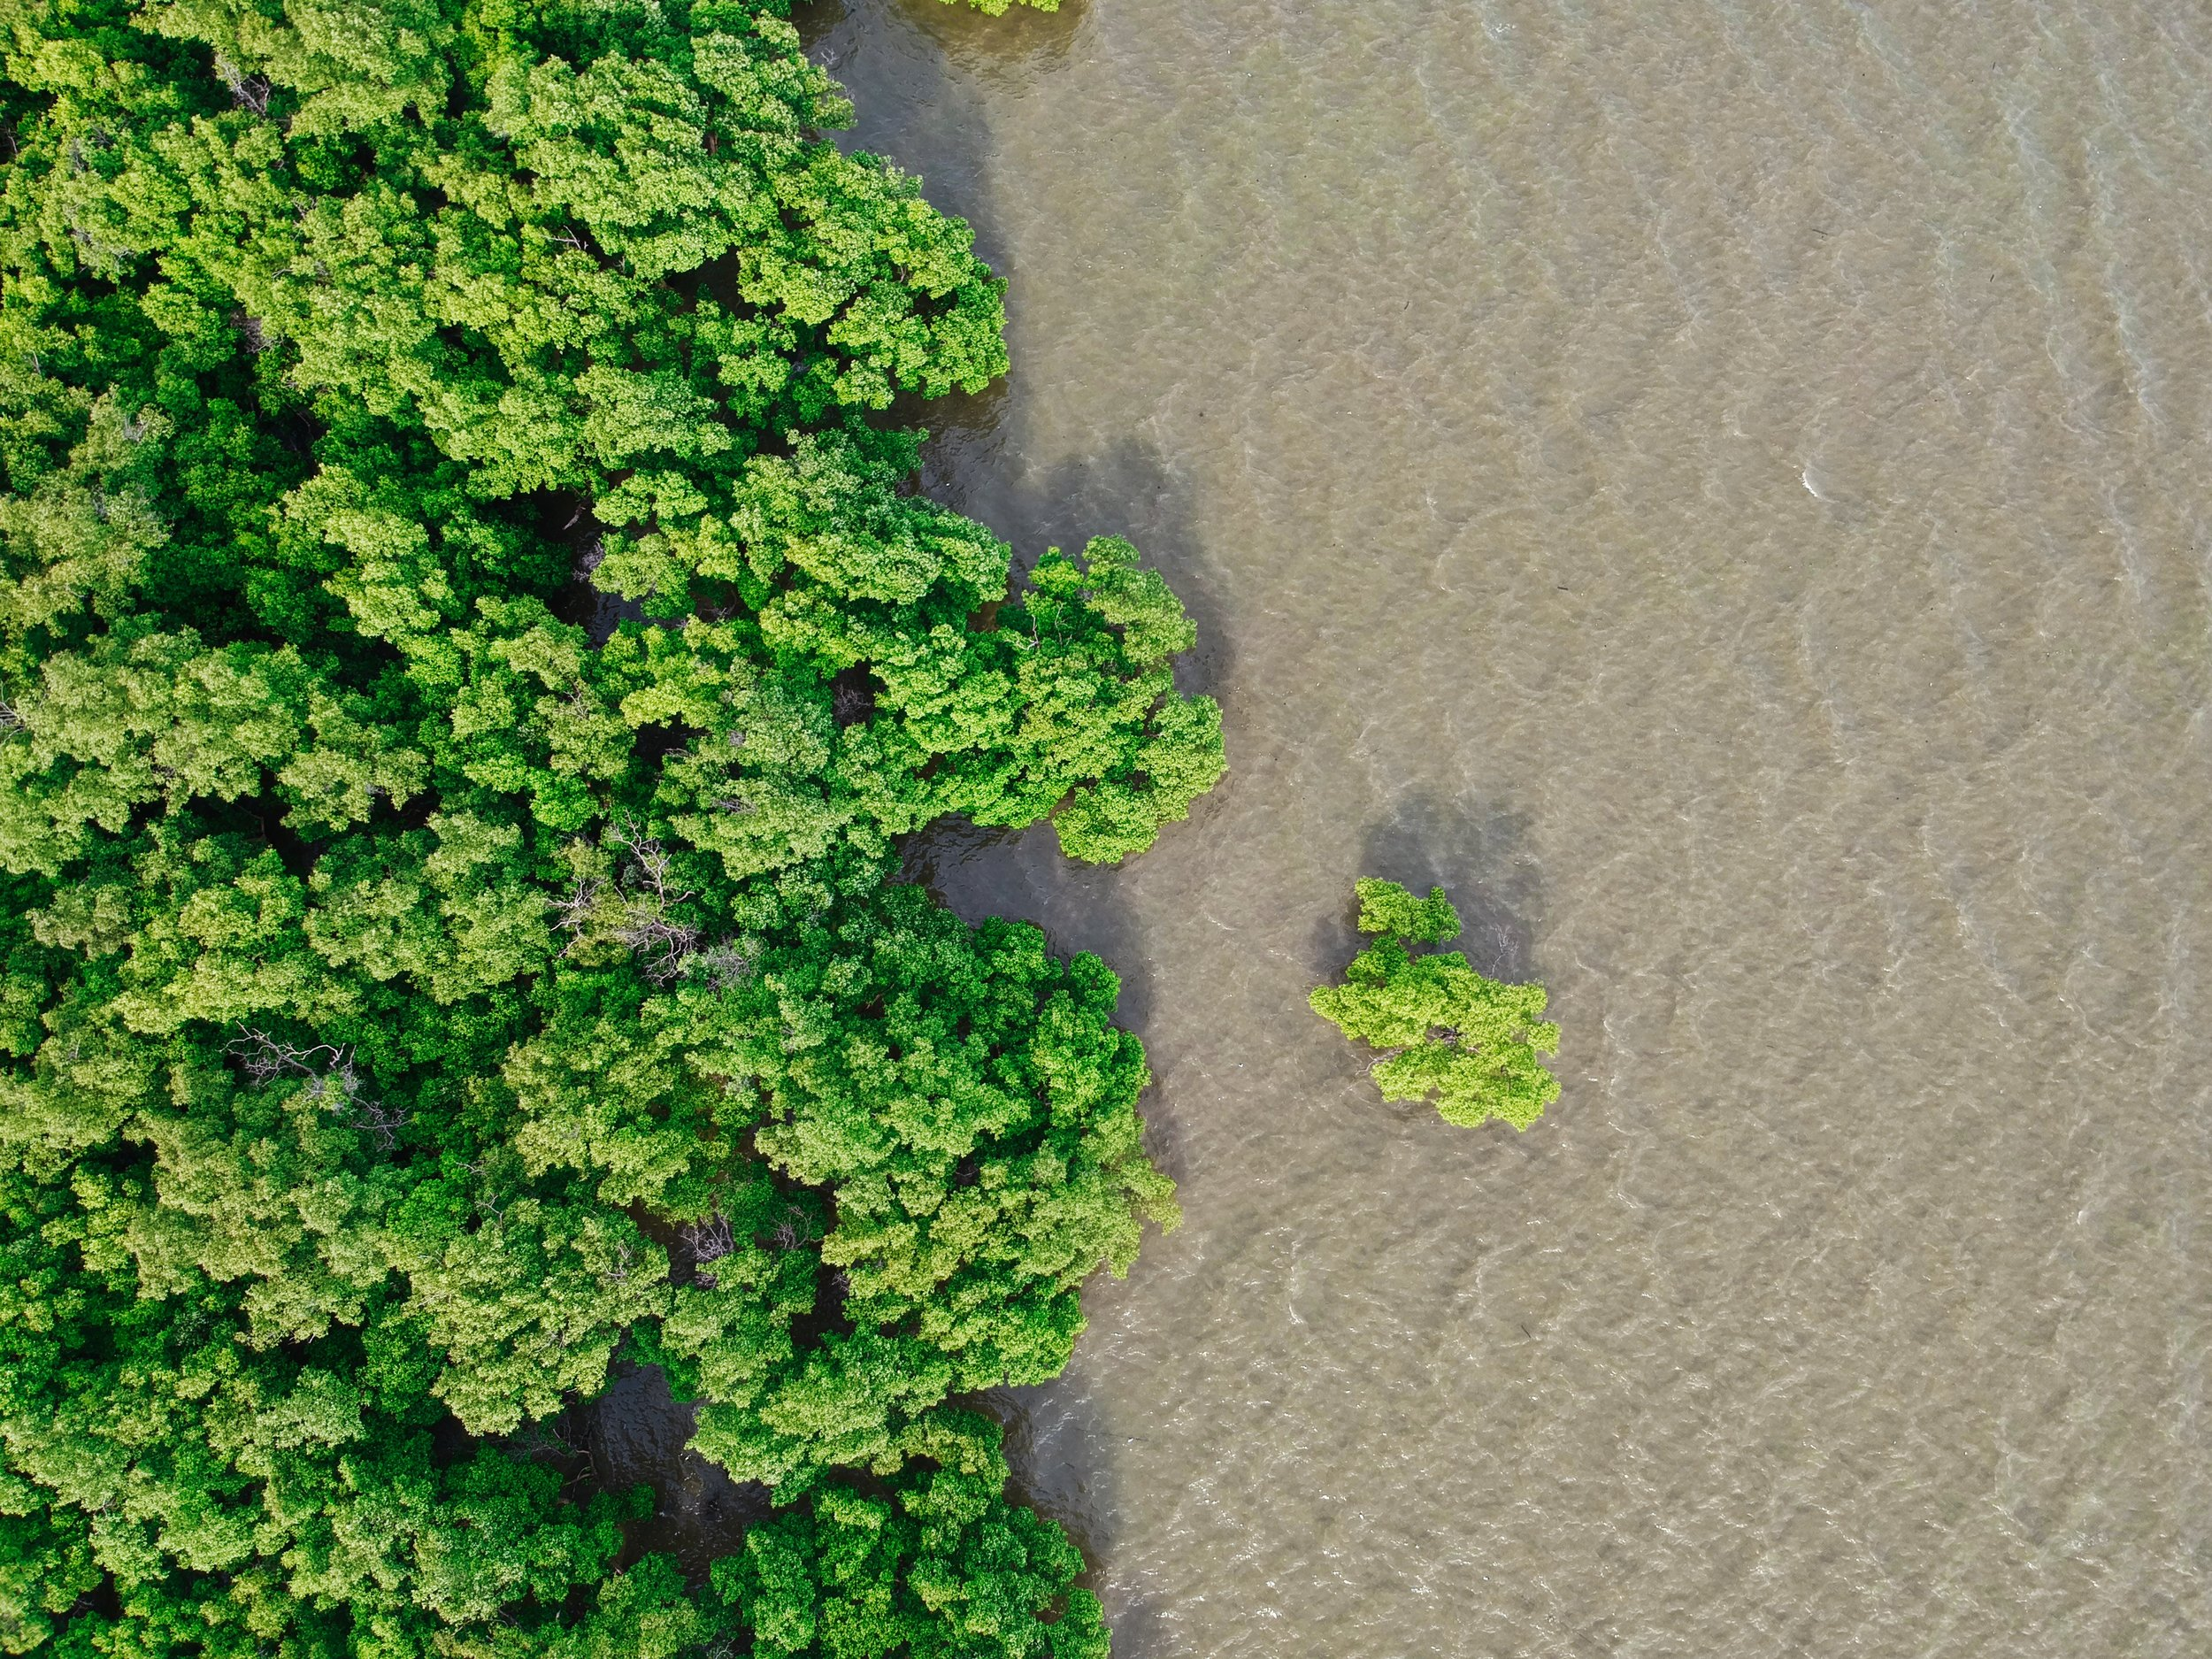 Drone view of mangroves in Itacaré, Bahia, Brazil (ETIV do Brasil)